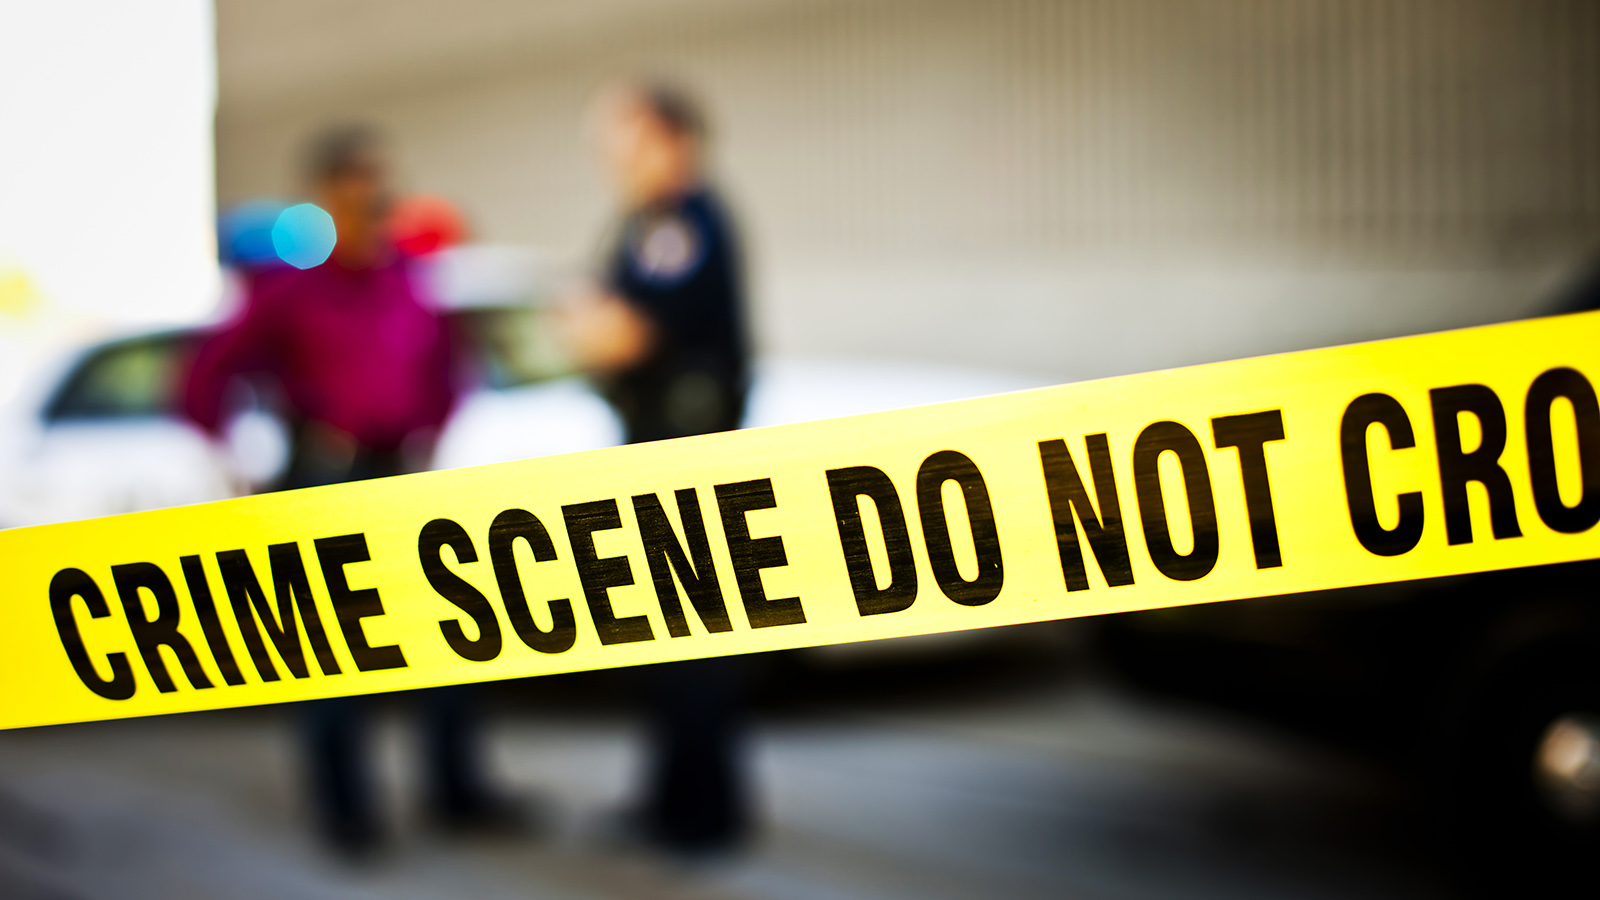 Closeup of crime scene tape with police officers and police car in background. Utahlypse 2011